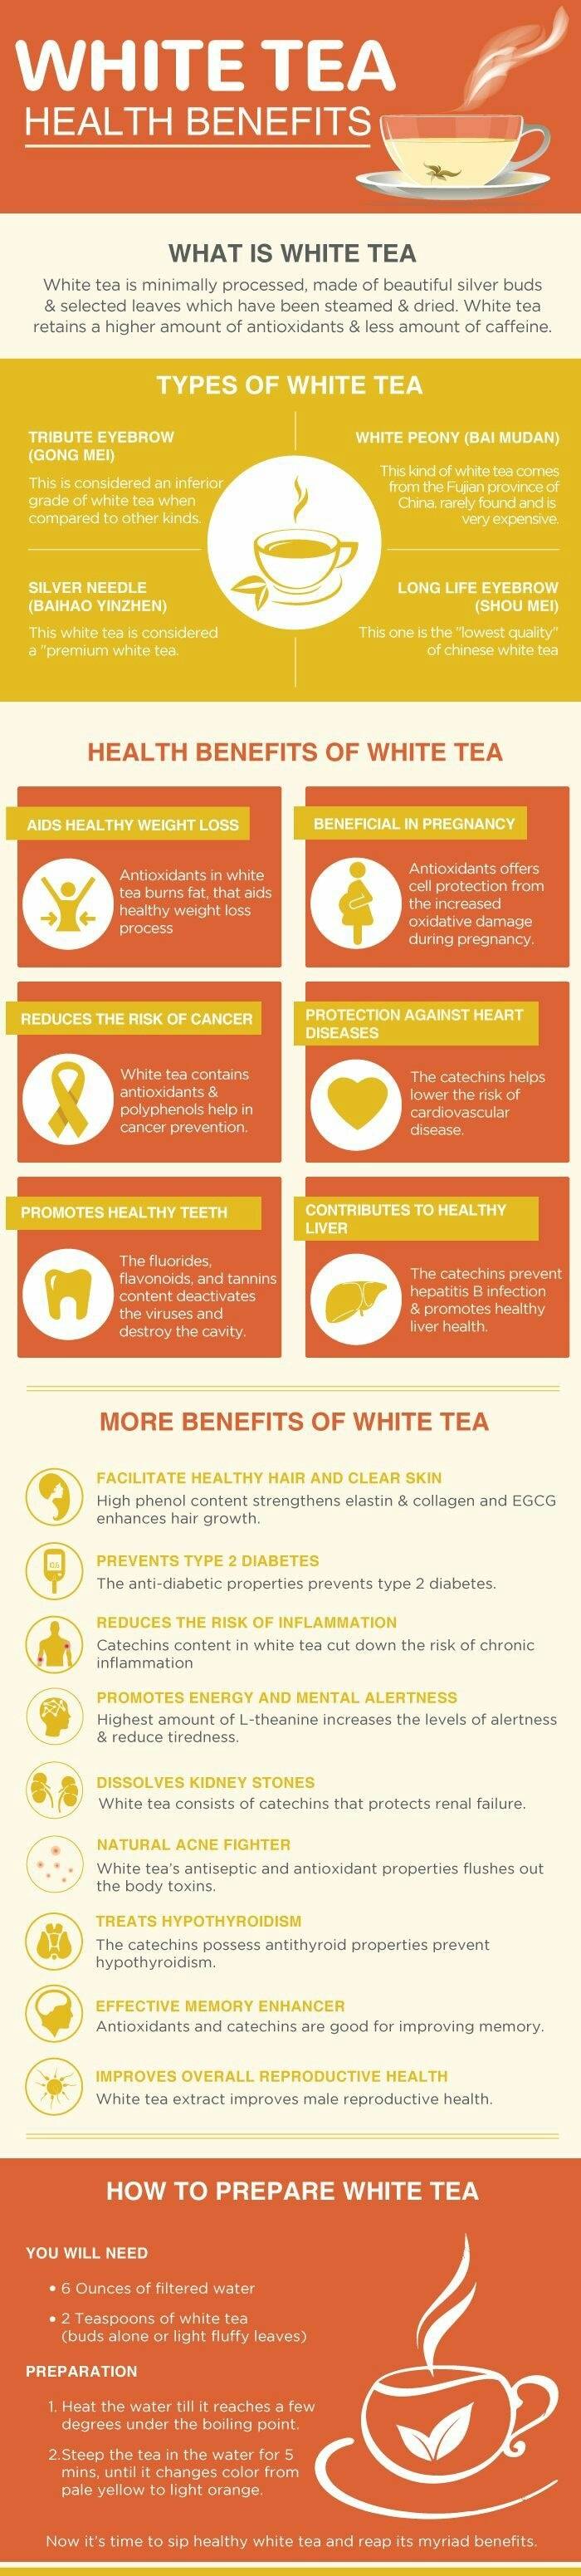 Worth a try - The benefits of white tea. Sounds like a winner.